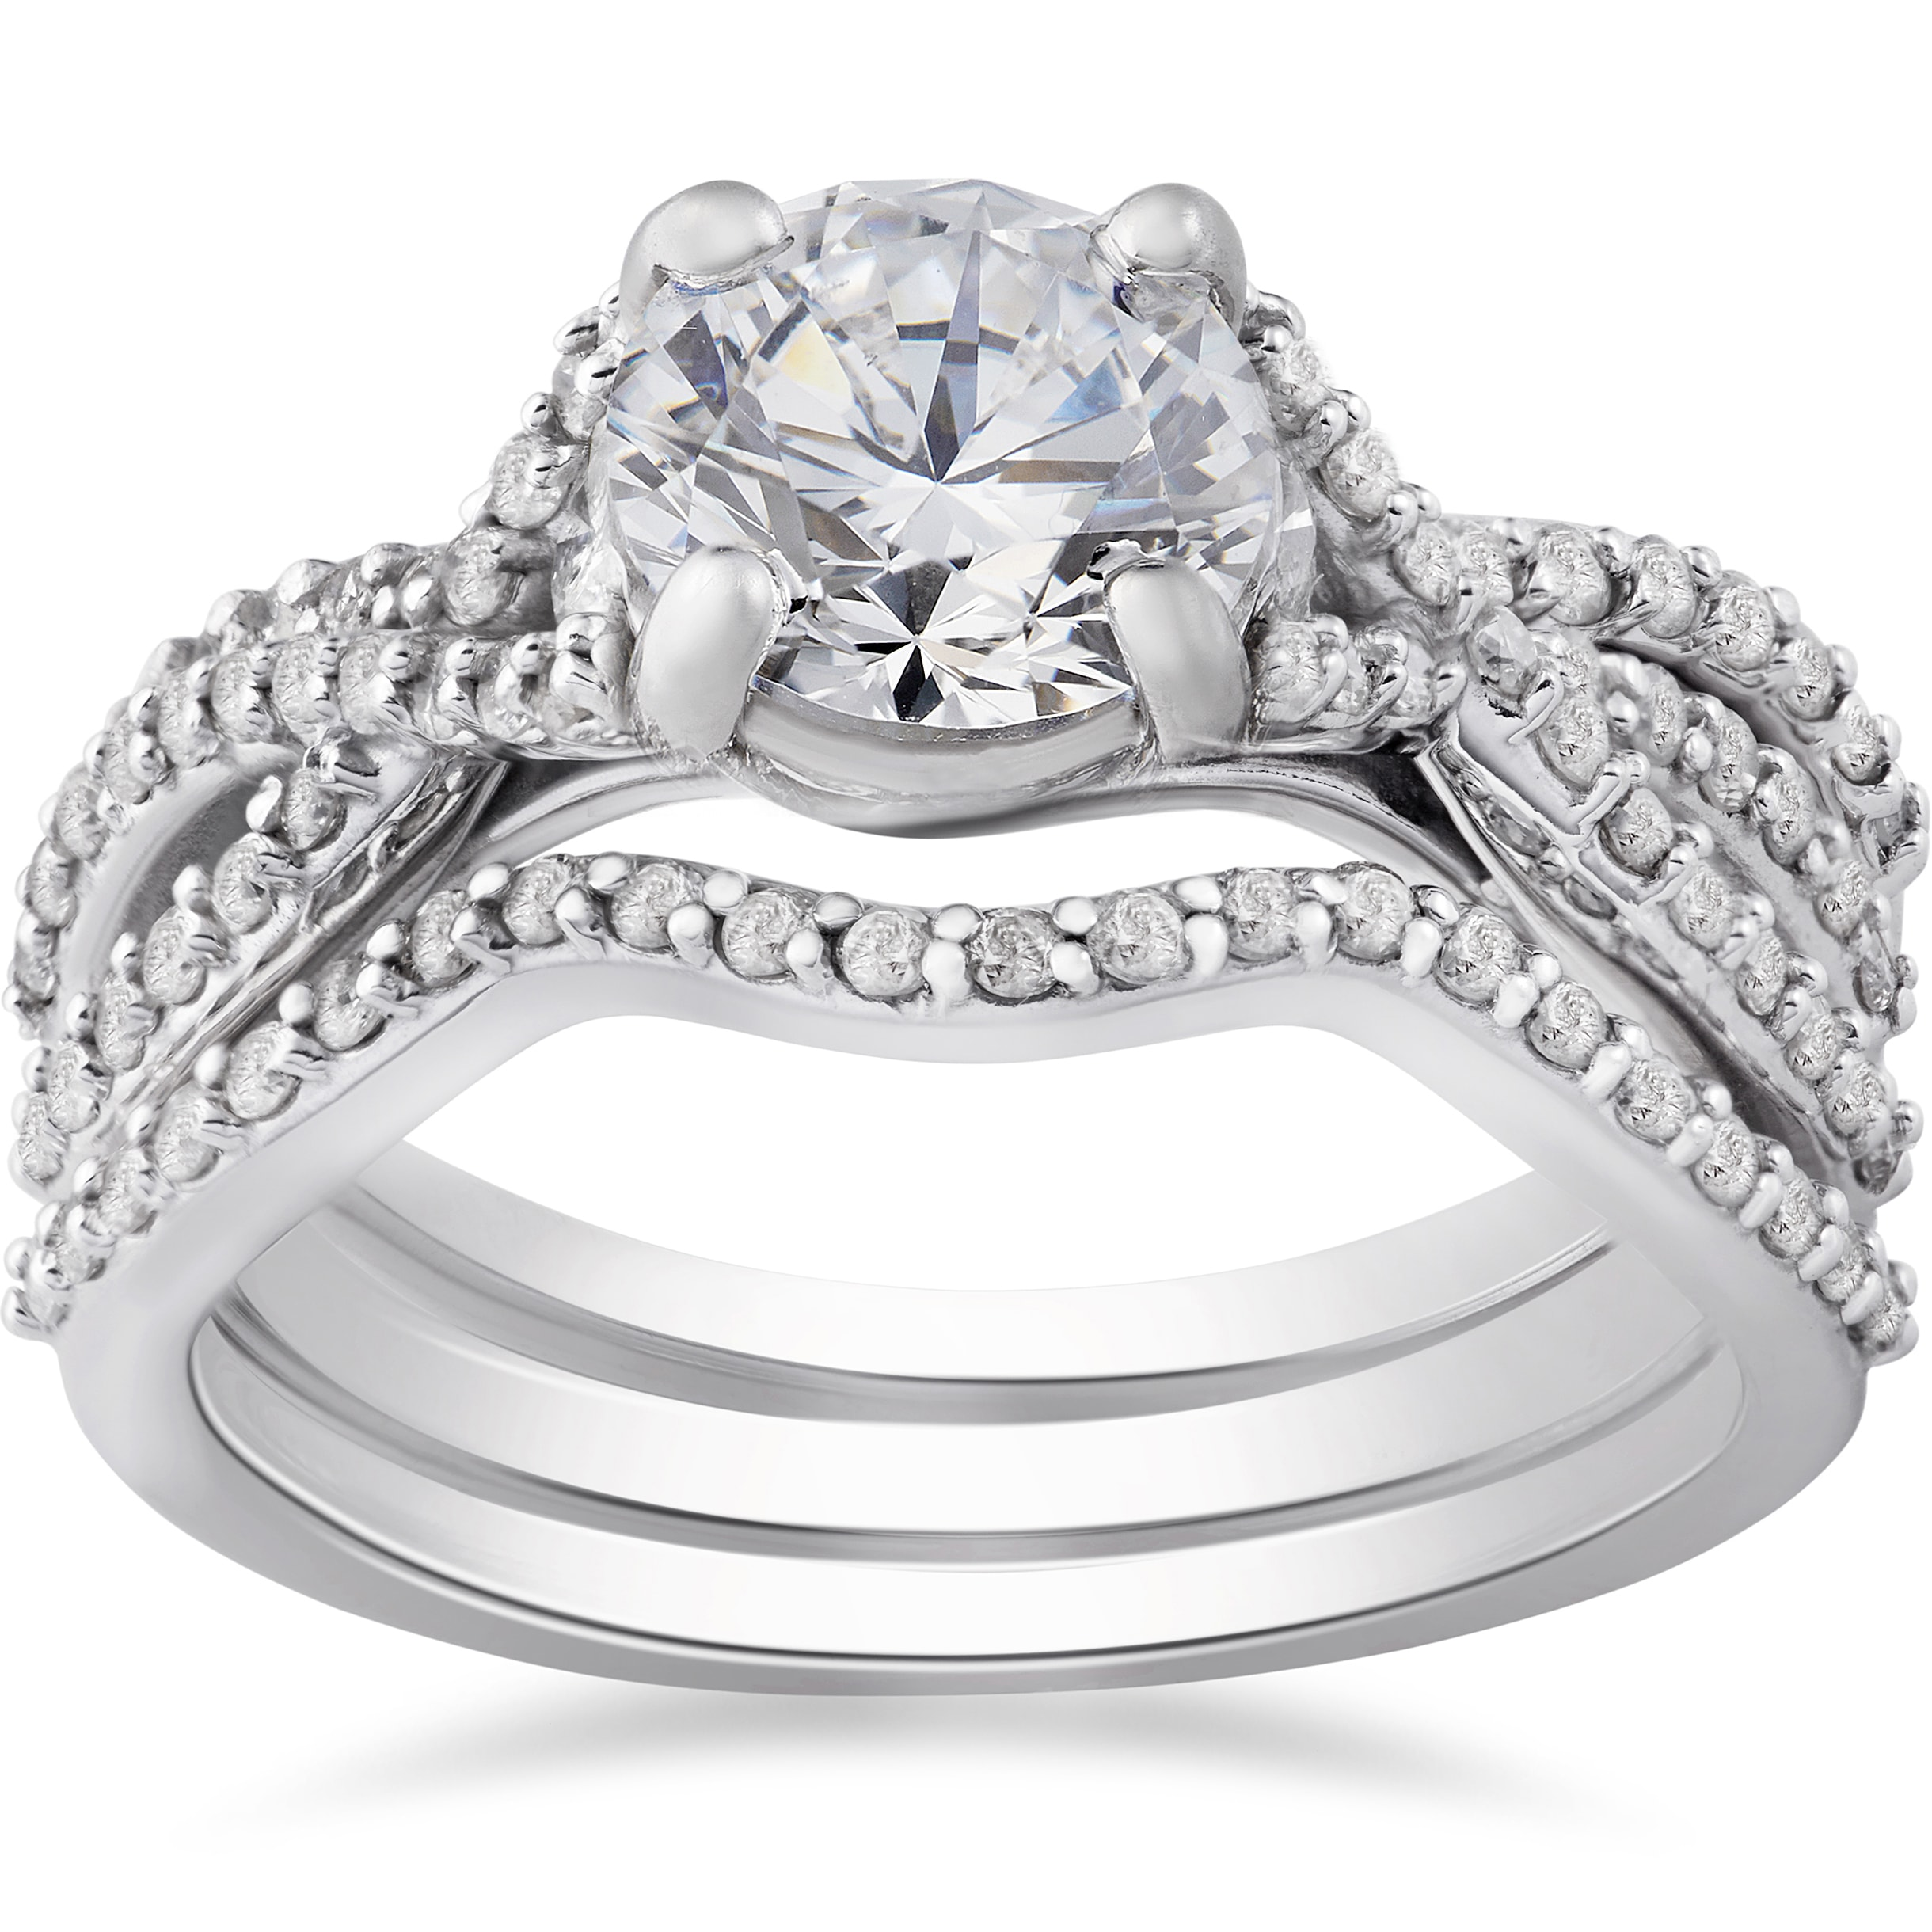 6 Prong set Black Diamond Engagement Ring Accented Shank 3//4 Carat Total Weight 14K Gold